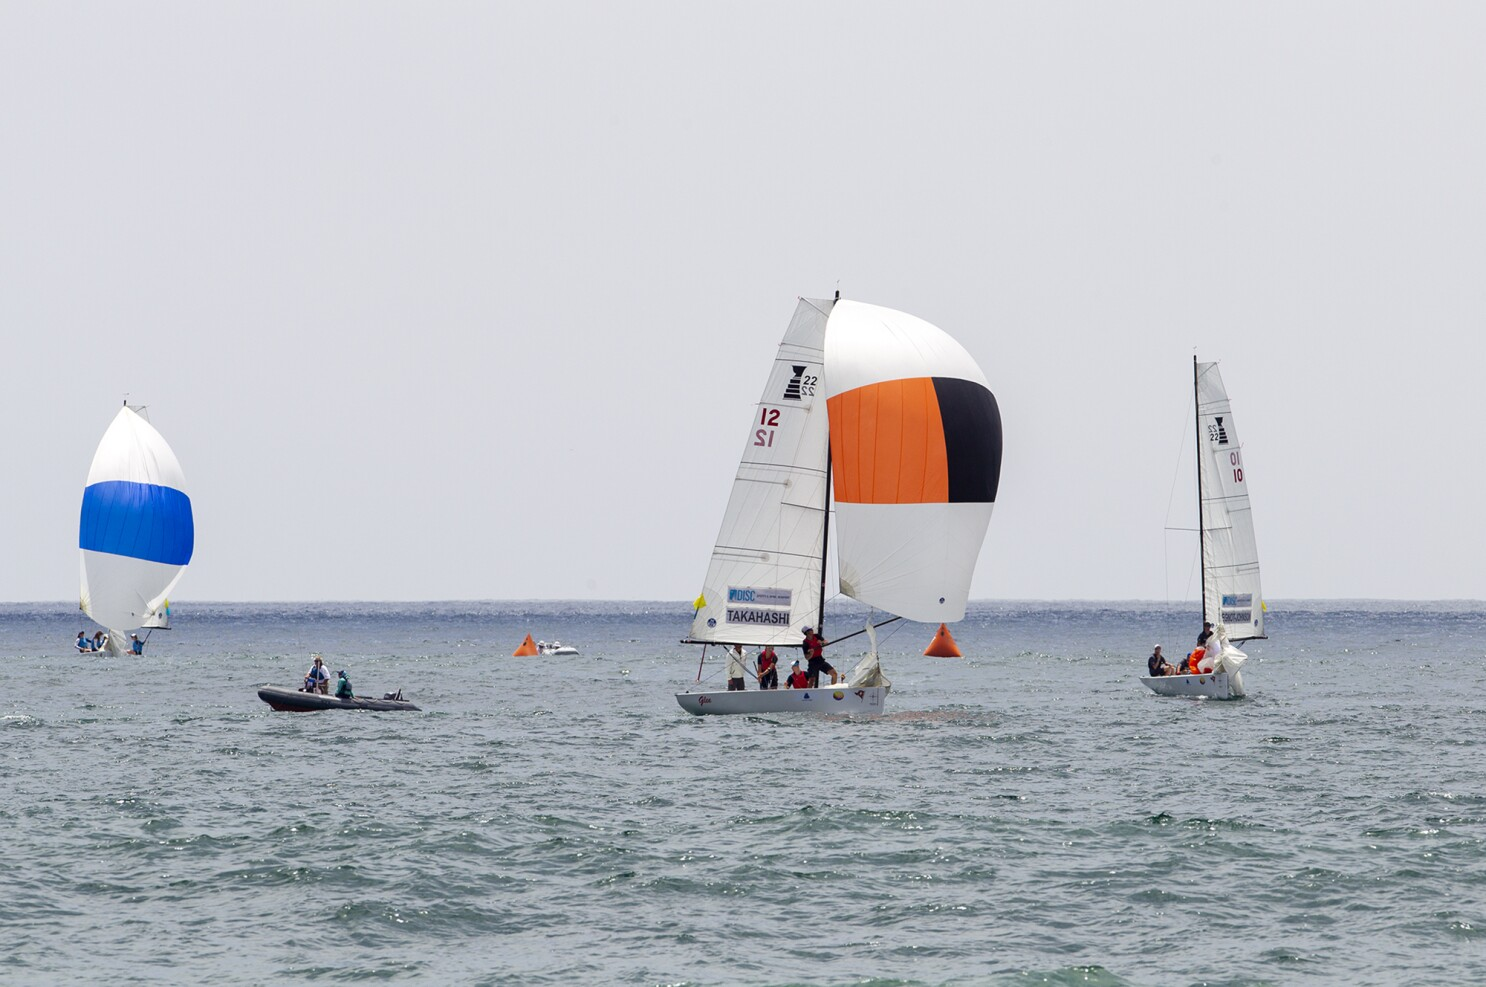 Leonard Takahashi, Finn Tapper lead fleet on first day of Governor's Cup - Los Angeles Times